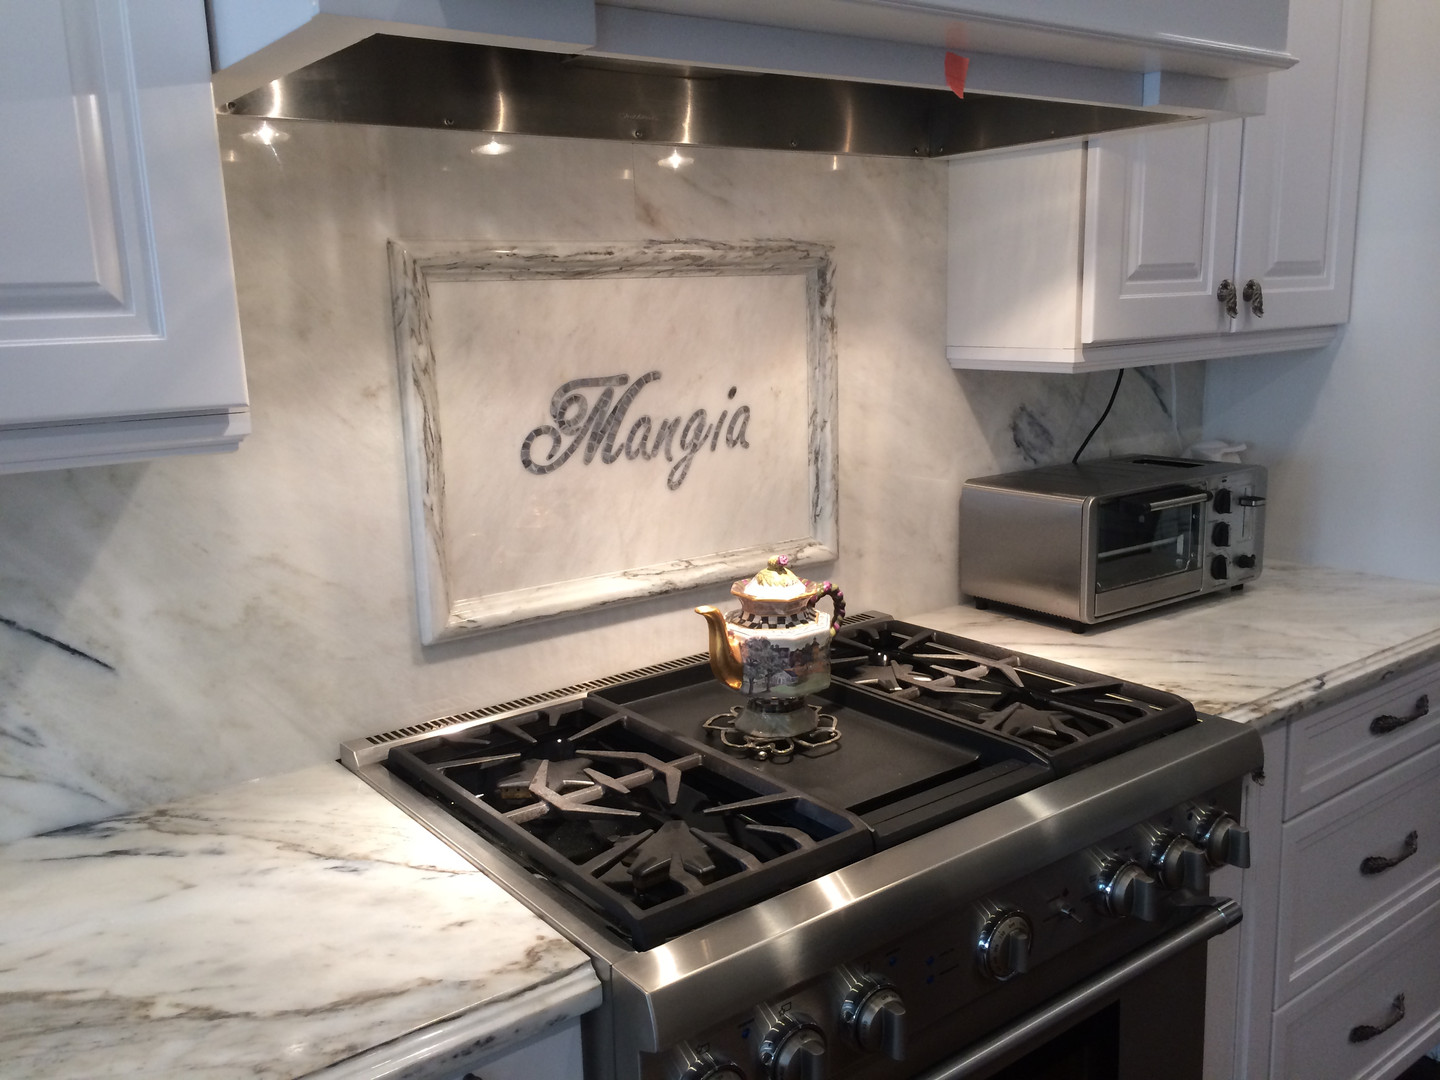 Custom Stone MANGIA Backsplash